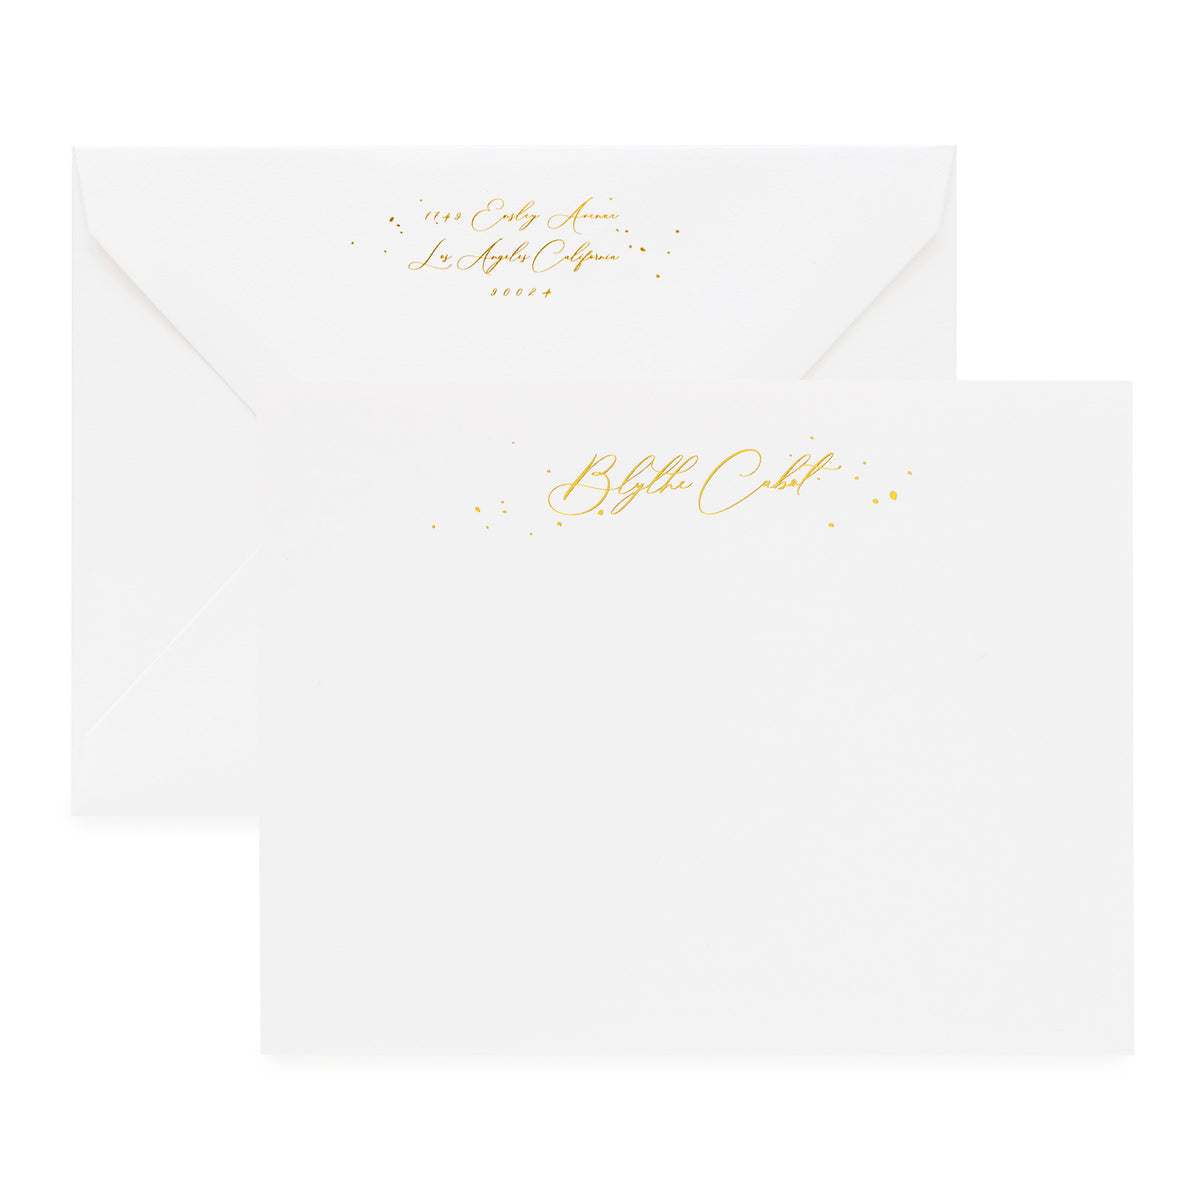 White stationery set with gold foil script name and gold return address detail